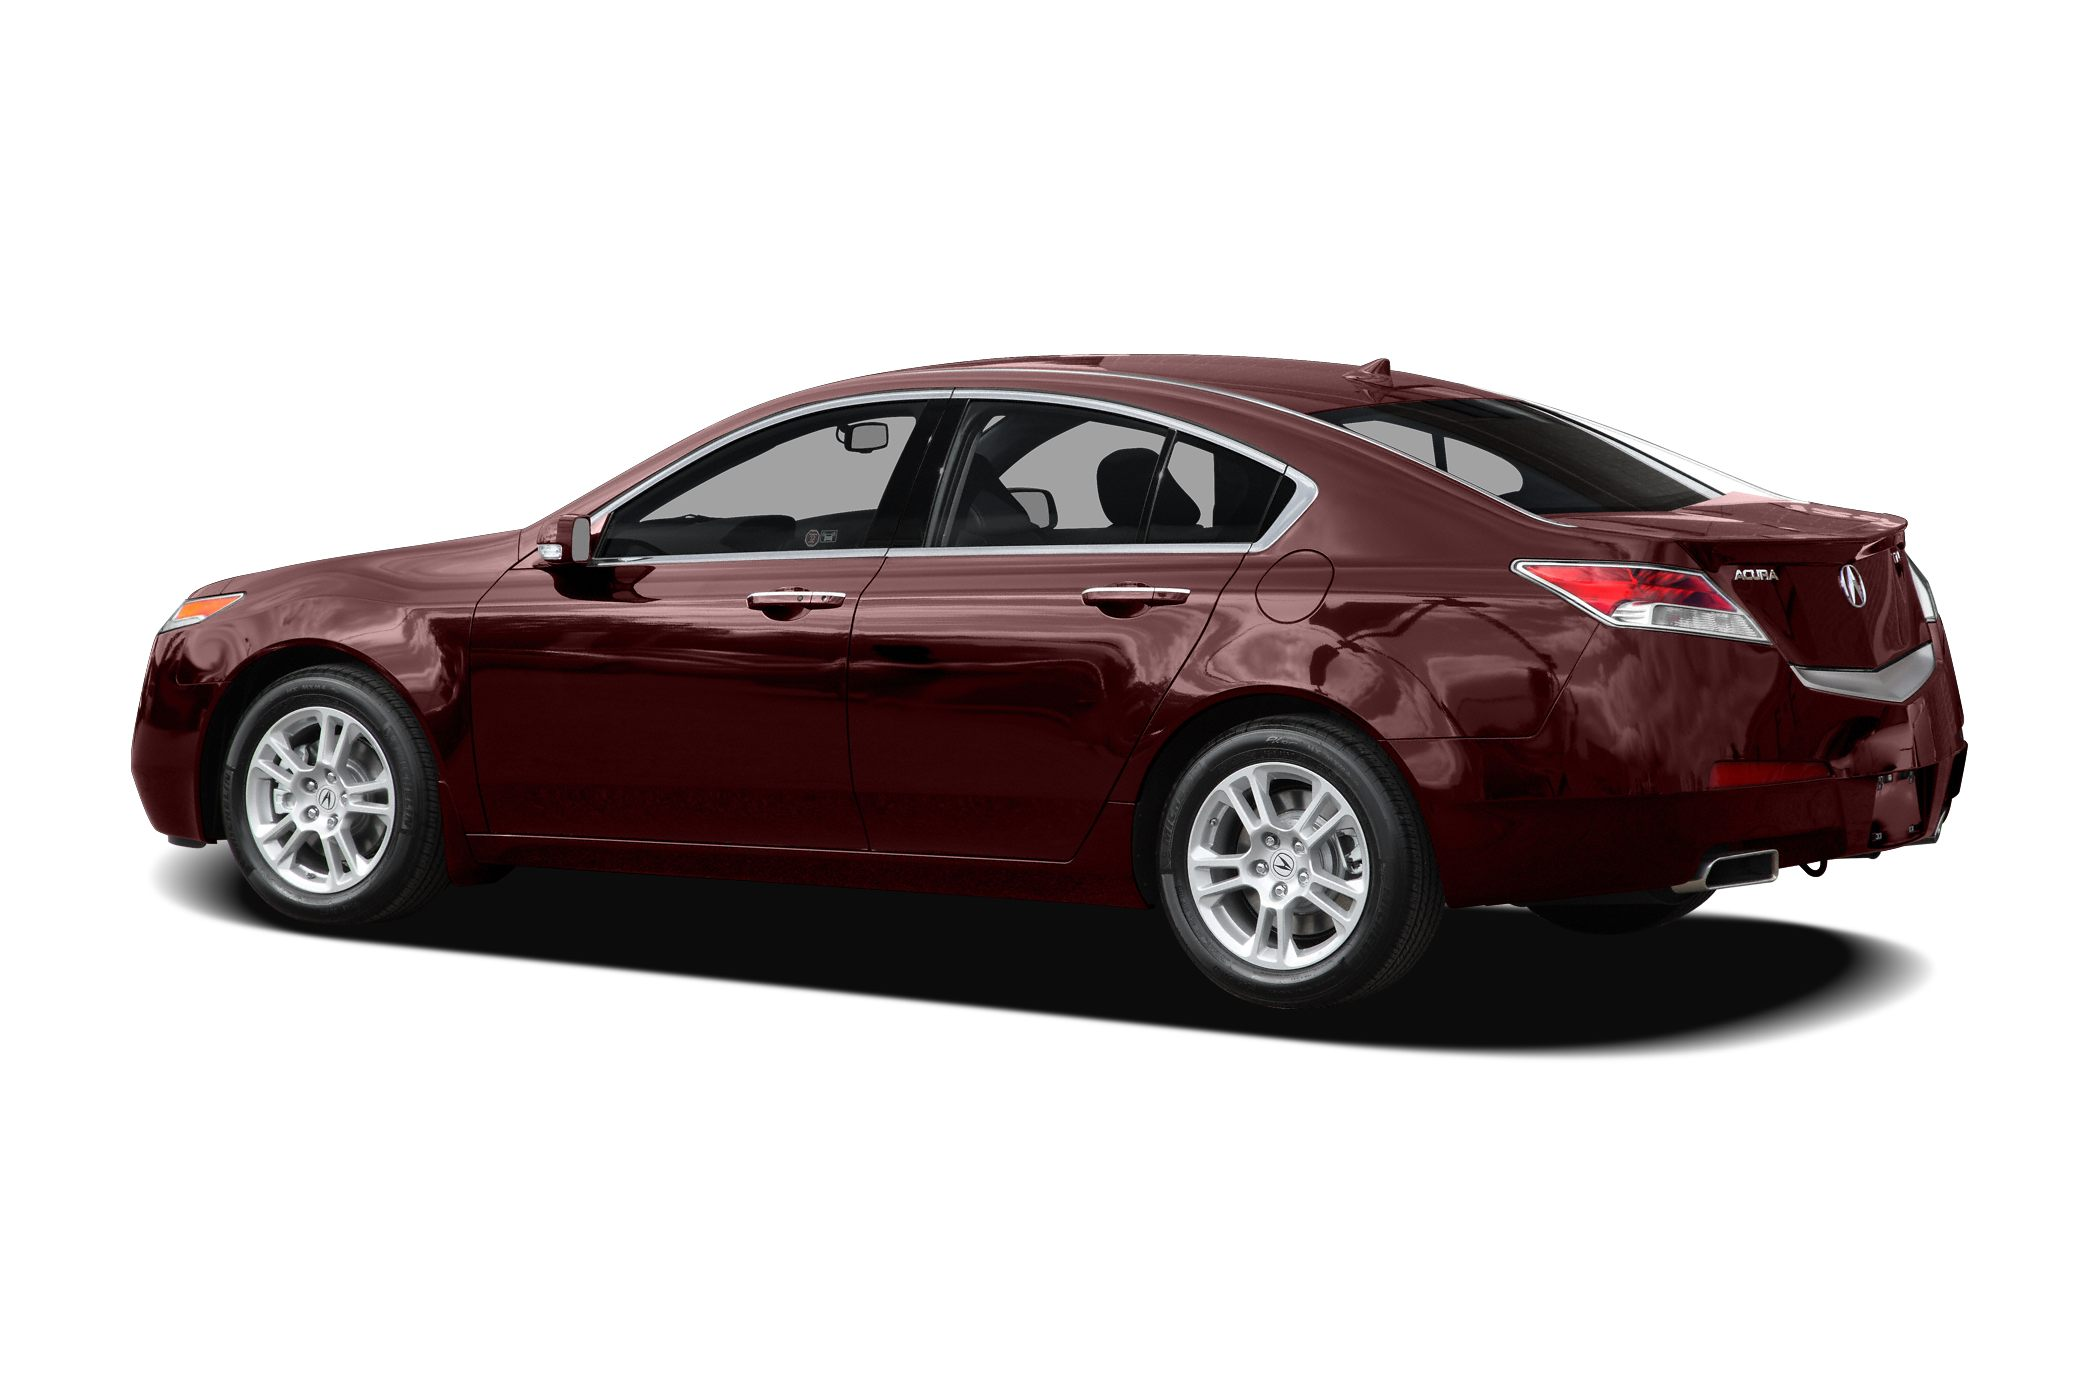 Acura Radio Code on 2010 Acura Tl Buying Overview  Prices   Deals   Carsdirect